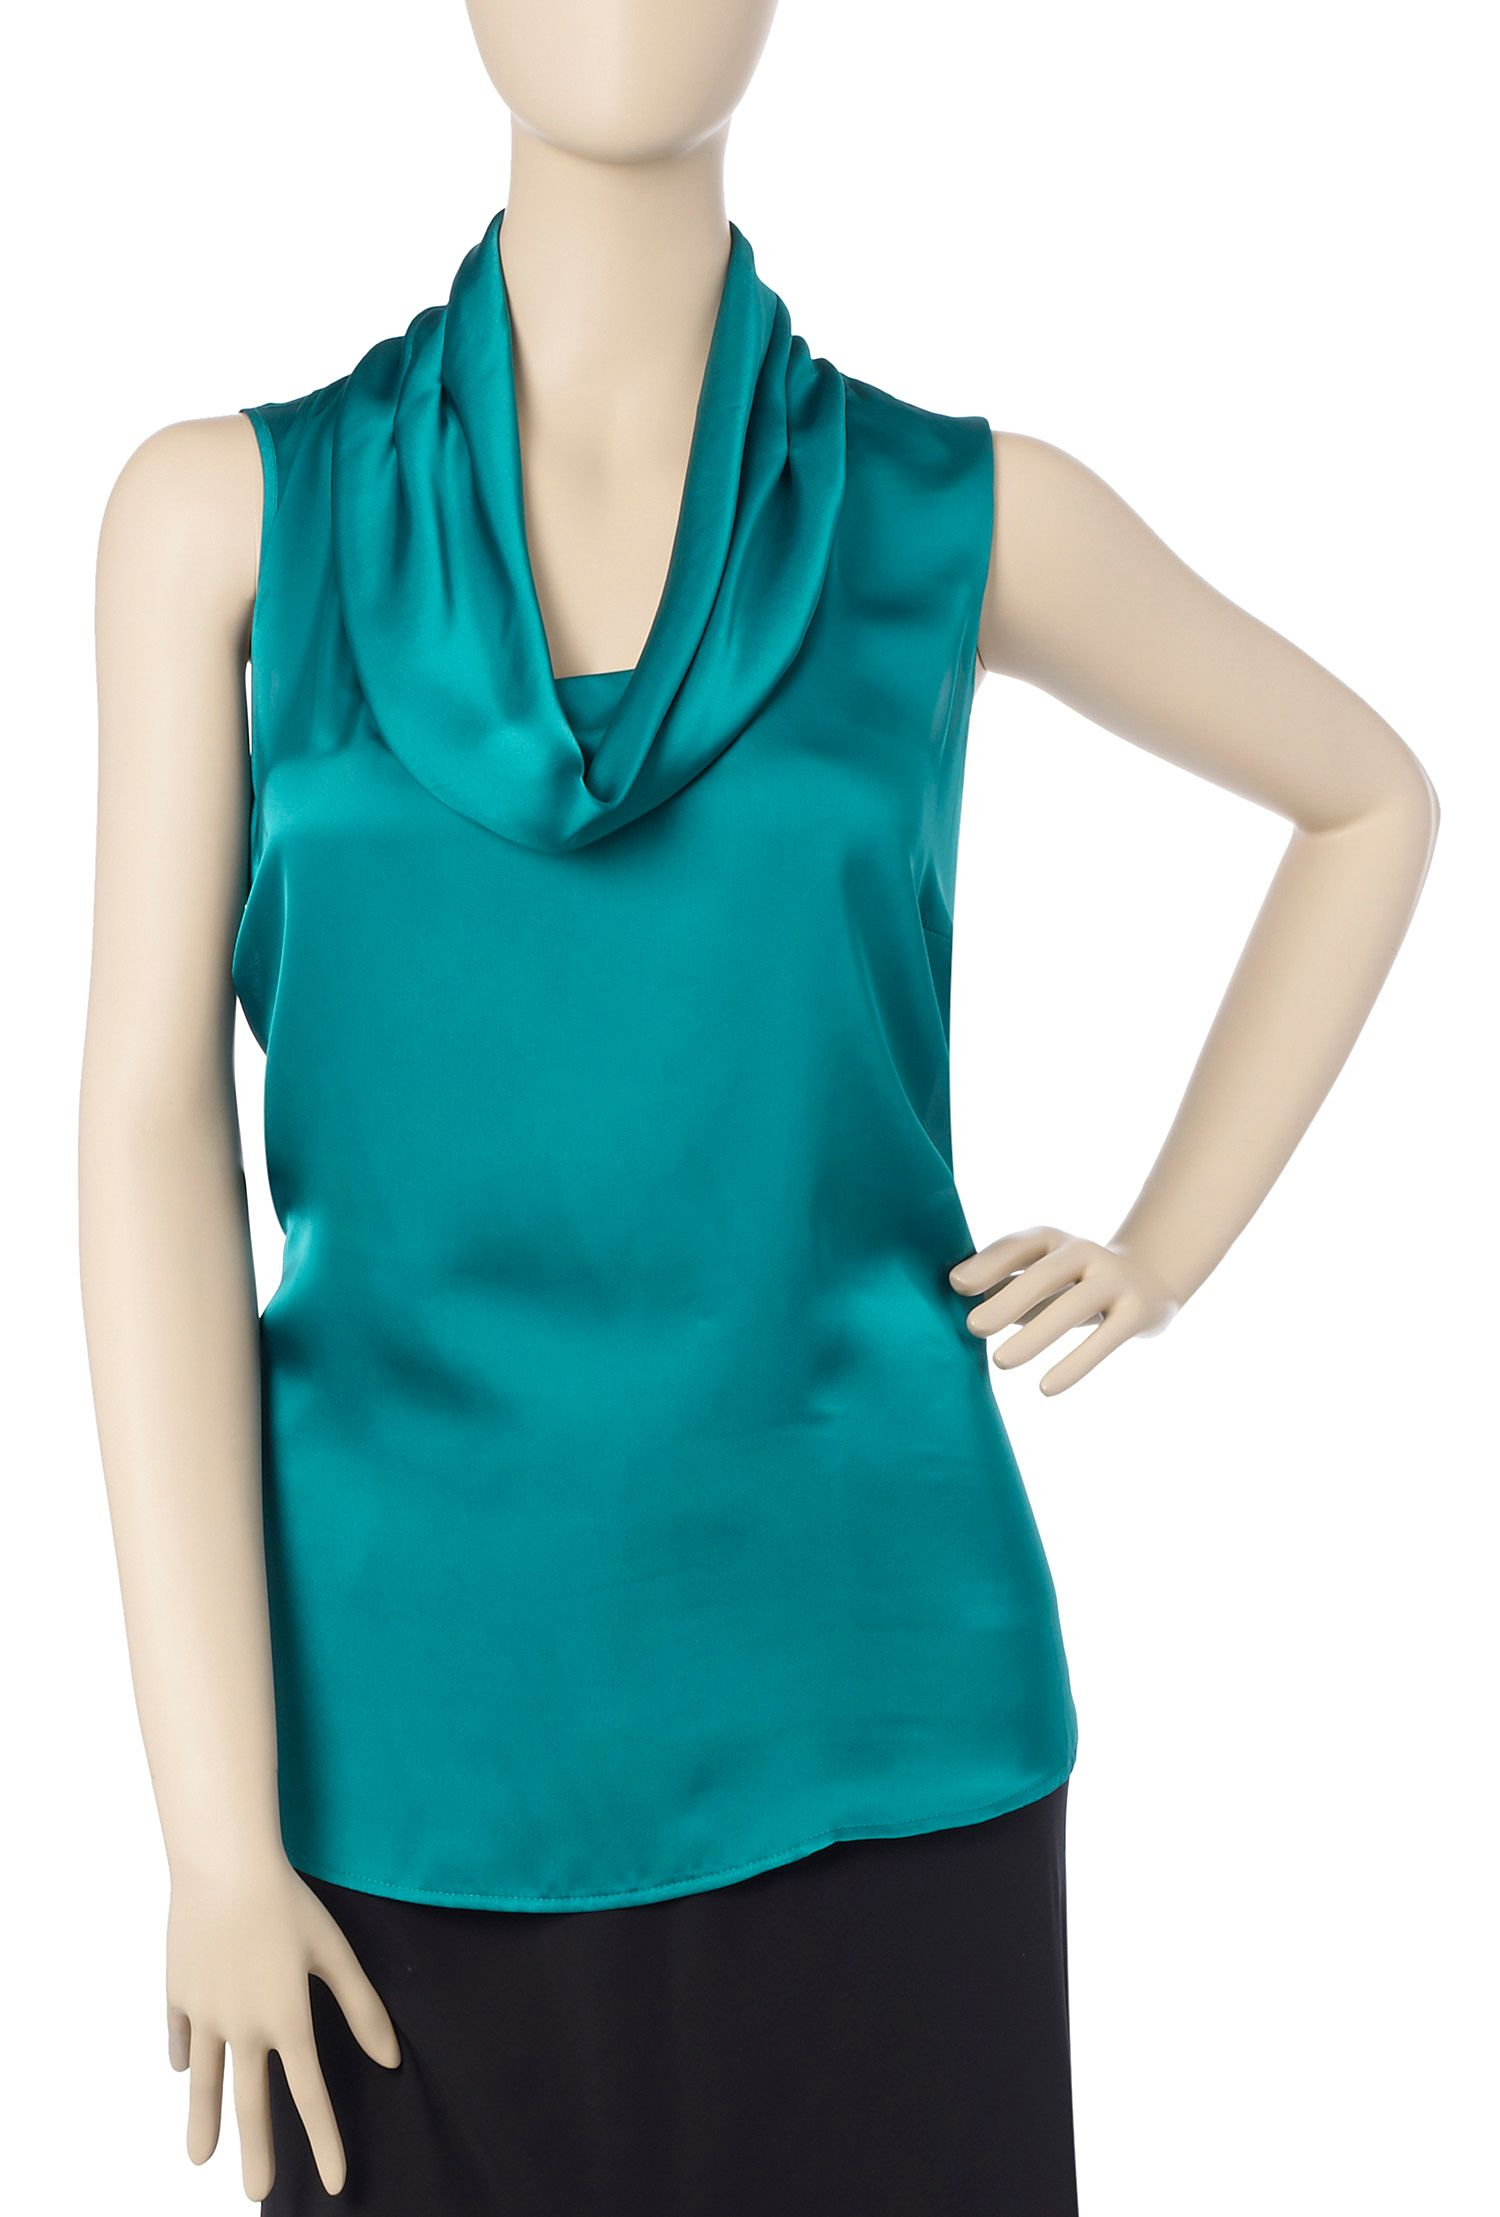 Ann Harvey Cowl neck blouse Teal product image